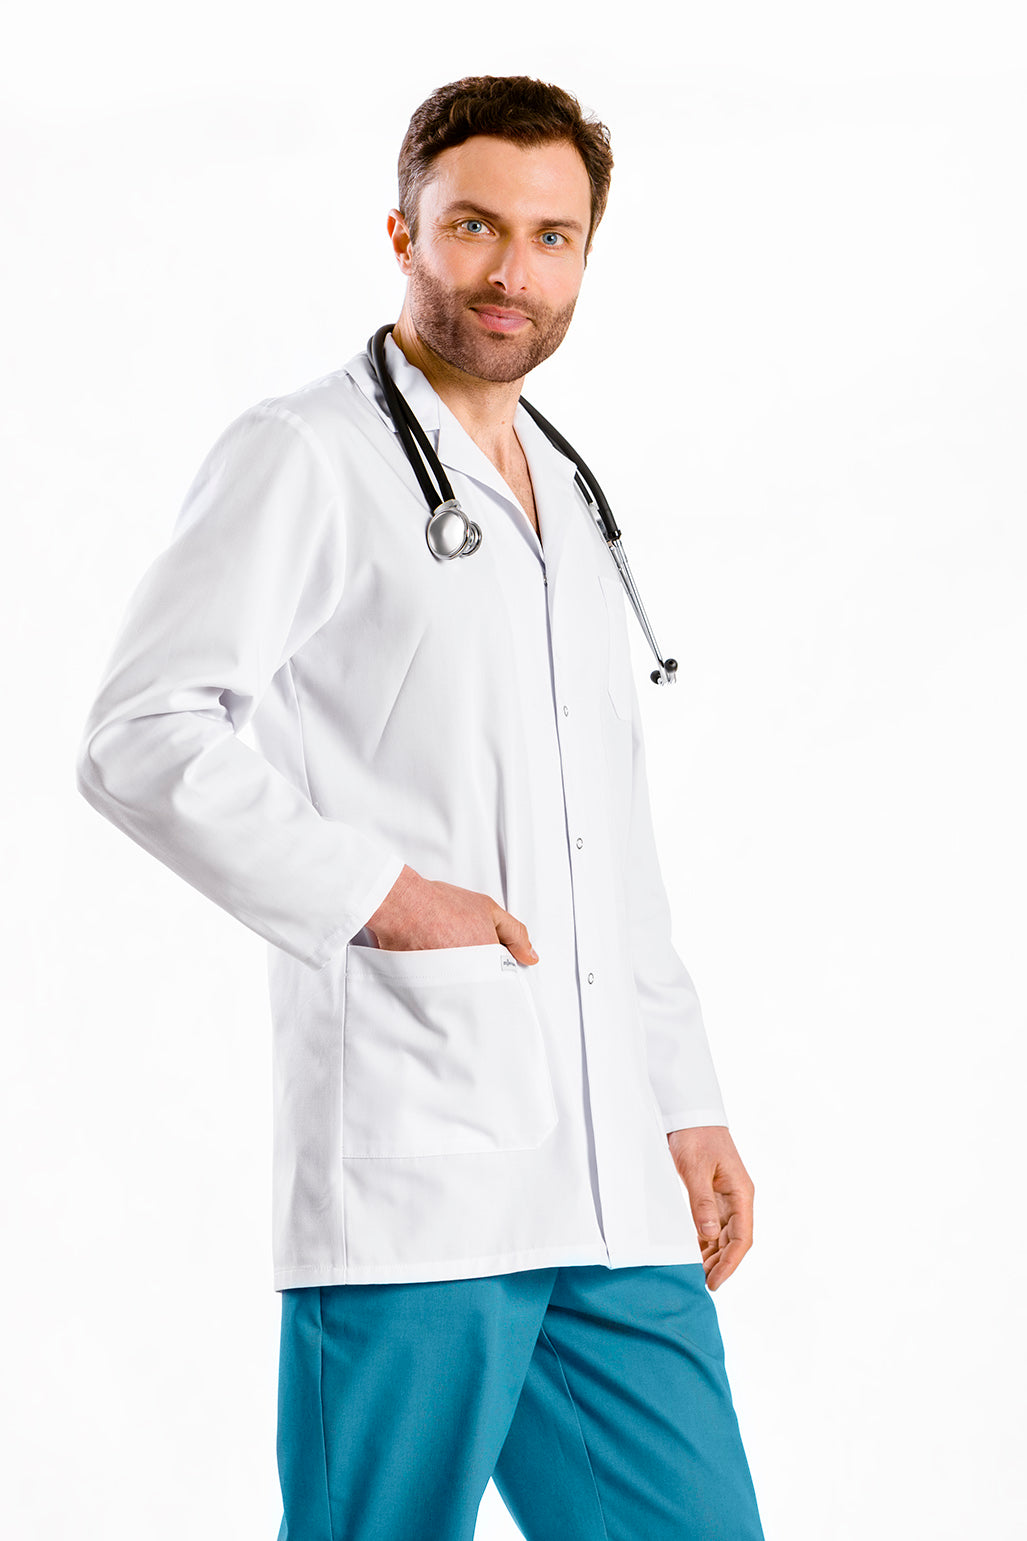 Unisex lab coat 3/4 long